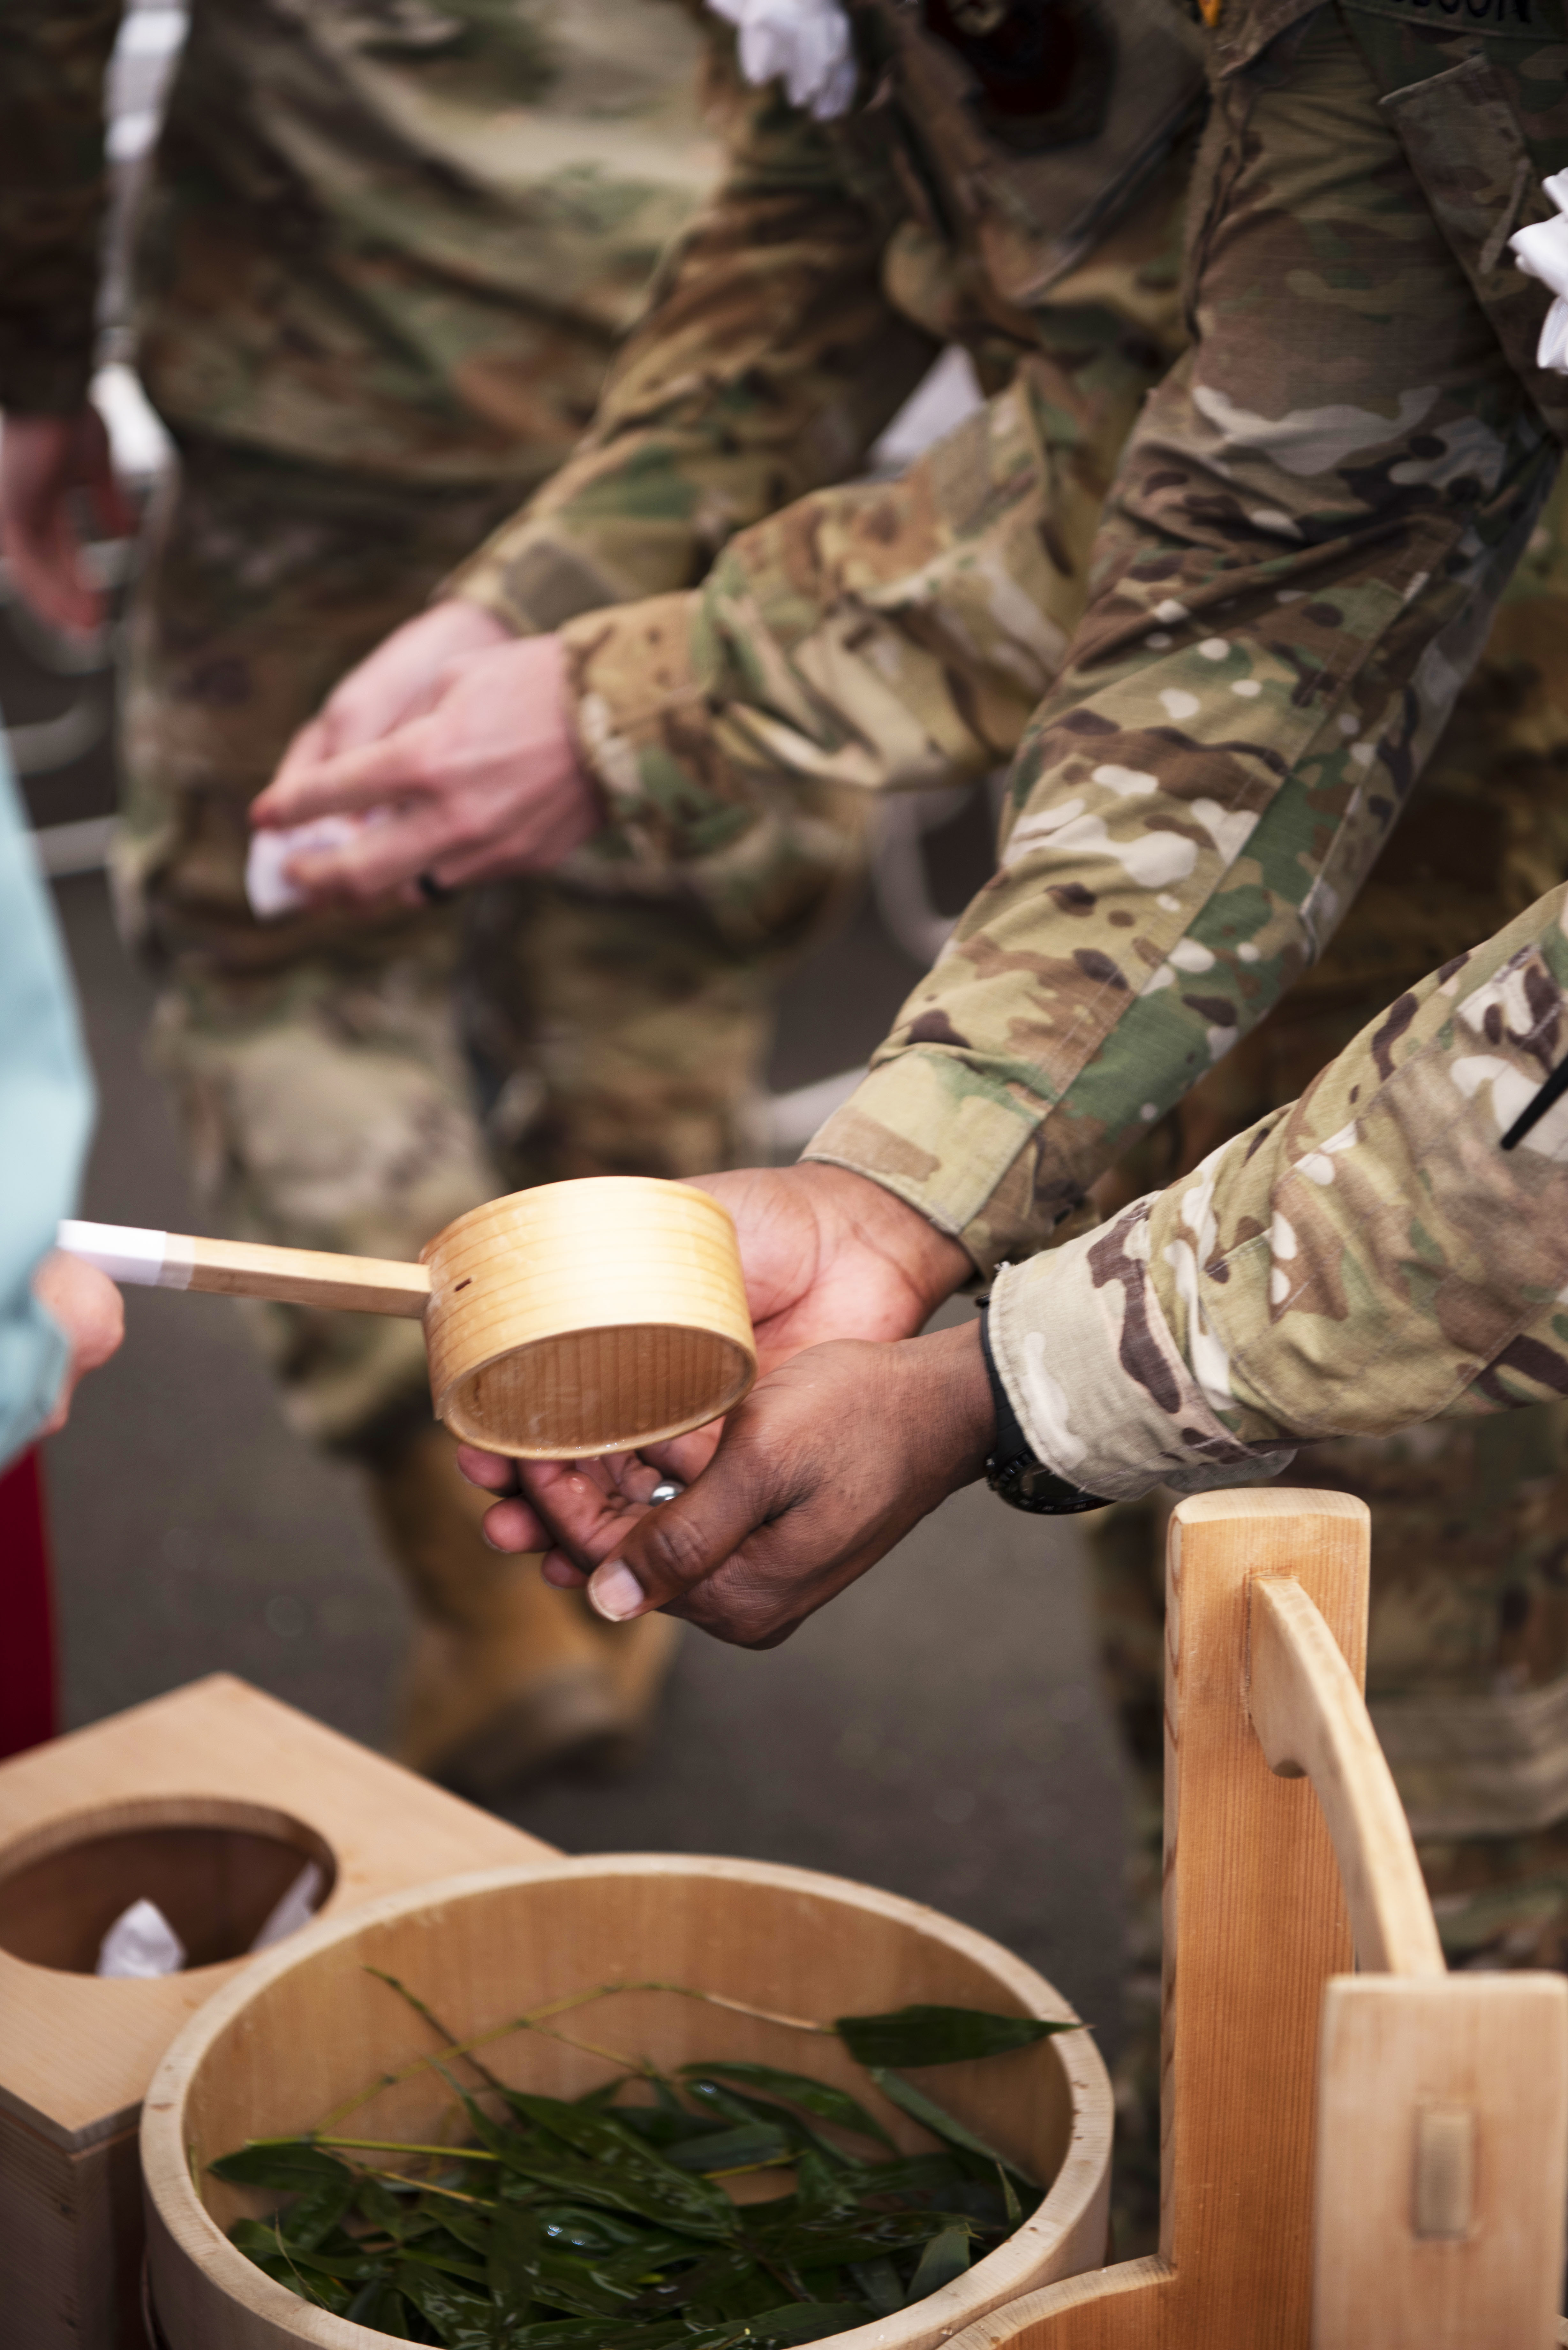 Col. Calvin Hudson, U.S. Army Global Combatant Command engineer, washes his hands before entering the Air Force Special Operations Command airfield apron ground breaking ceremony held at Yokota Air Base, Japan, Dec. 5, 2019. Every attendee who entered the sacred space was required to wash their hands in observance of Shinto traditions. (Staff Sgt. Taylor Workman/Air Force)